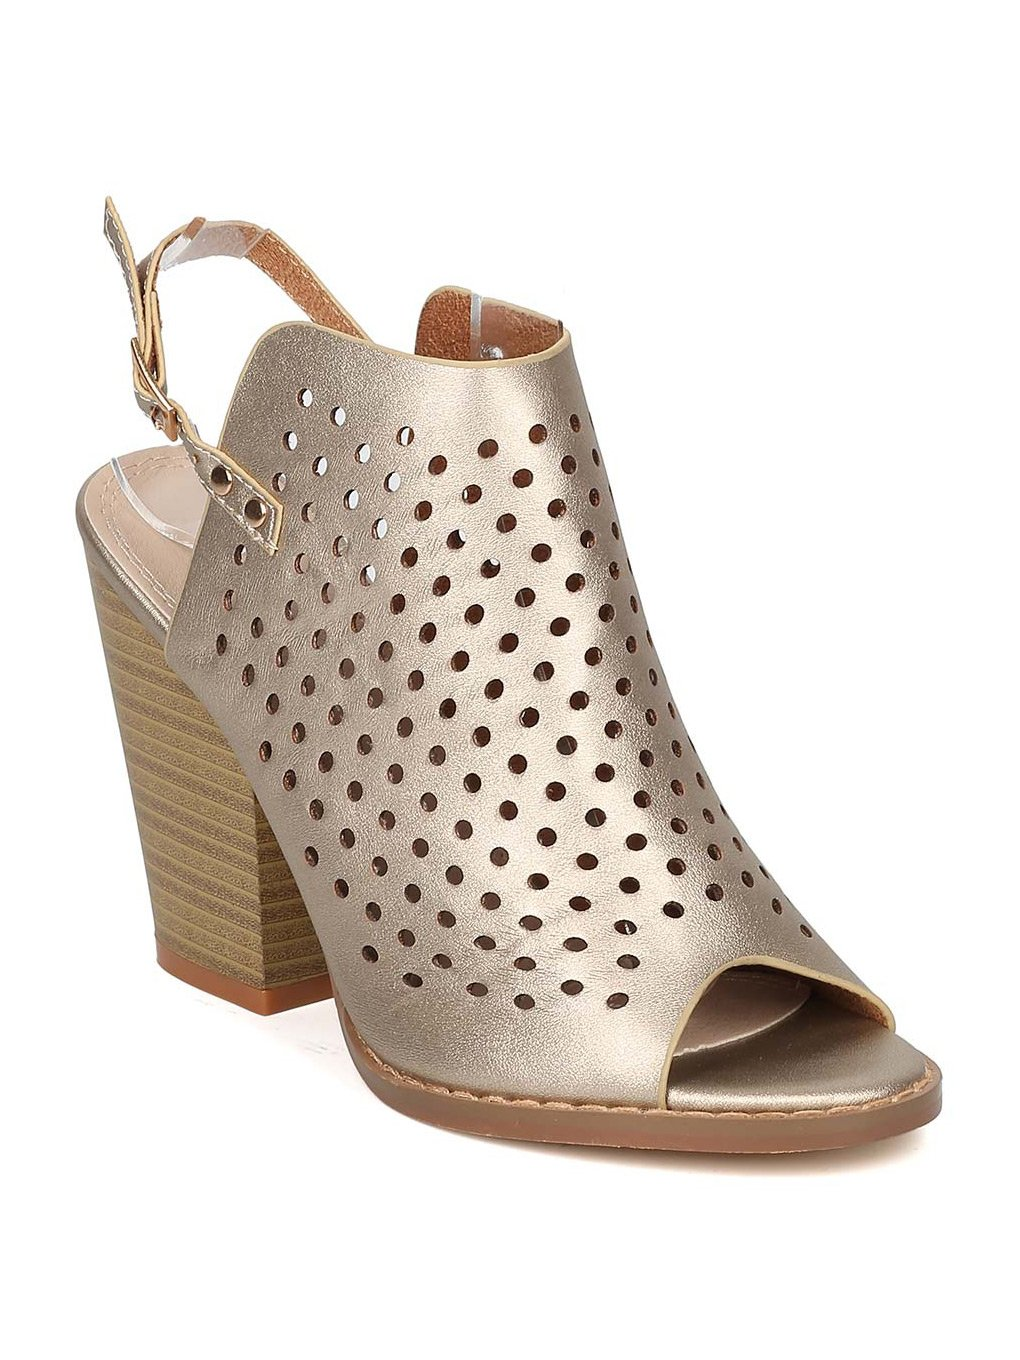 Nature Breeze Women Metallic Leatherette Perforated Slingback Chunky Heel Mule GF56 - Gold (Size: 9.0)